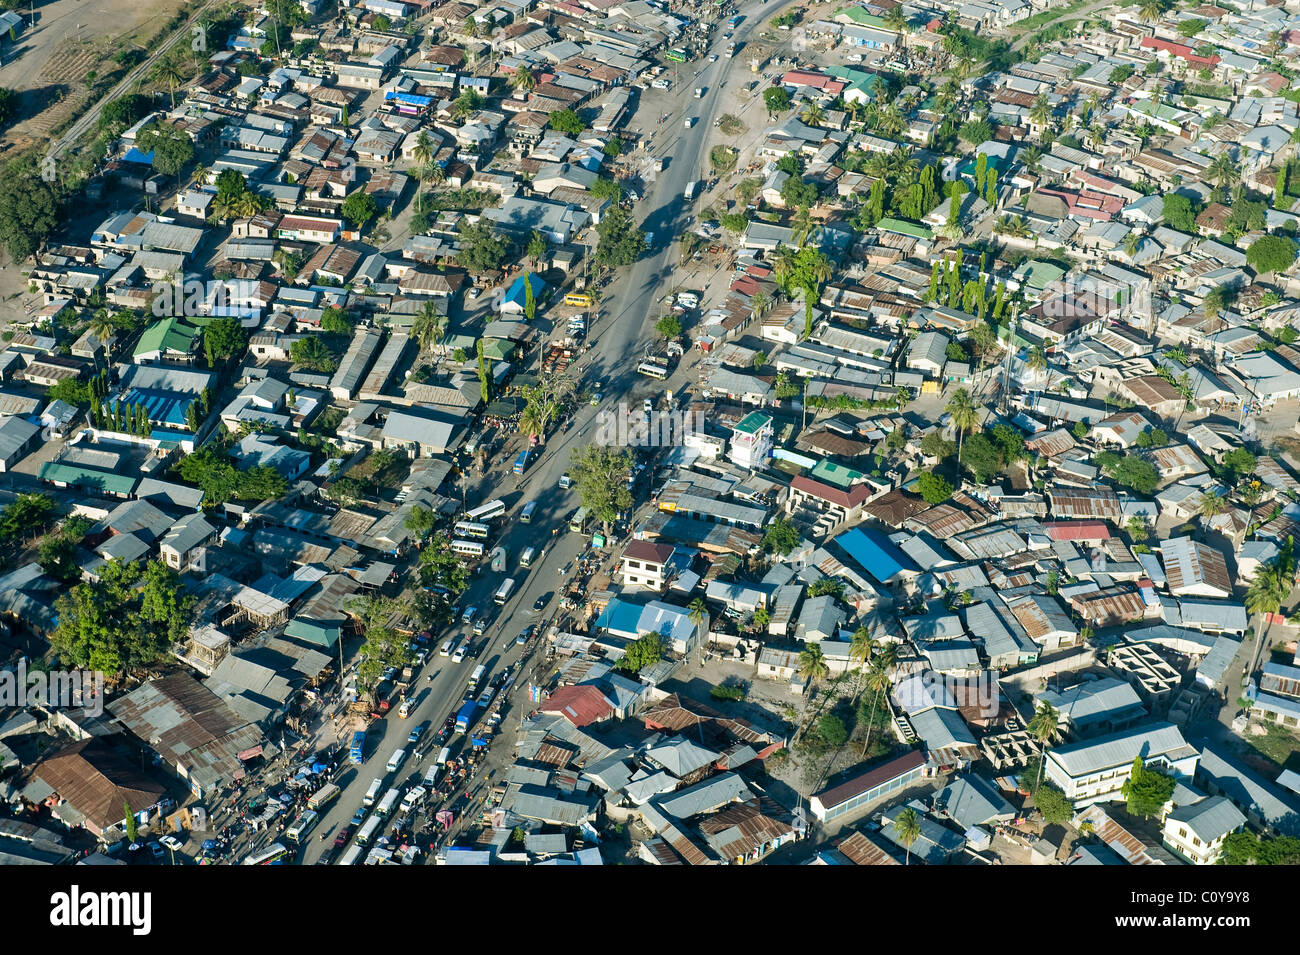 Busy road in a suburb of Dar es salaam aerial view Tanzania - Stock Image